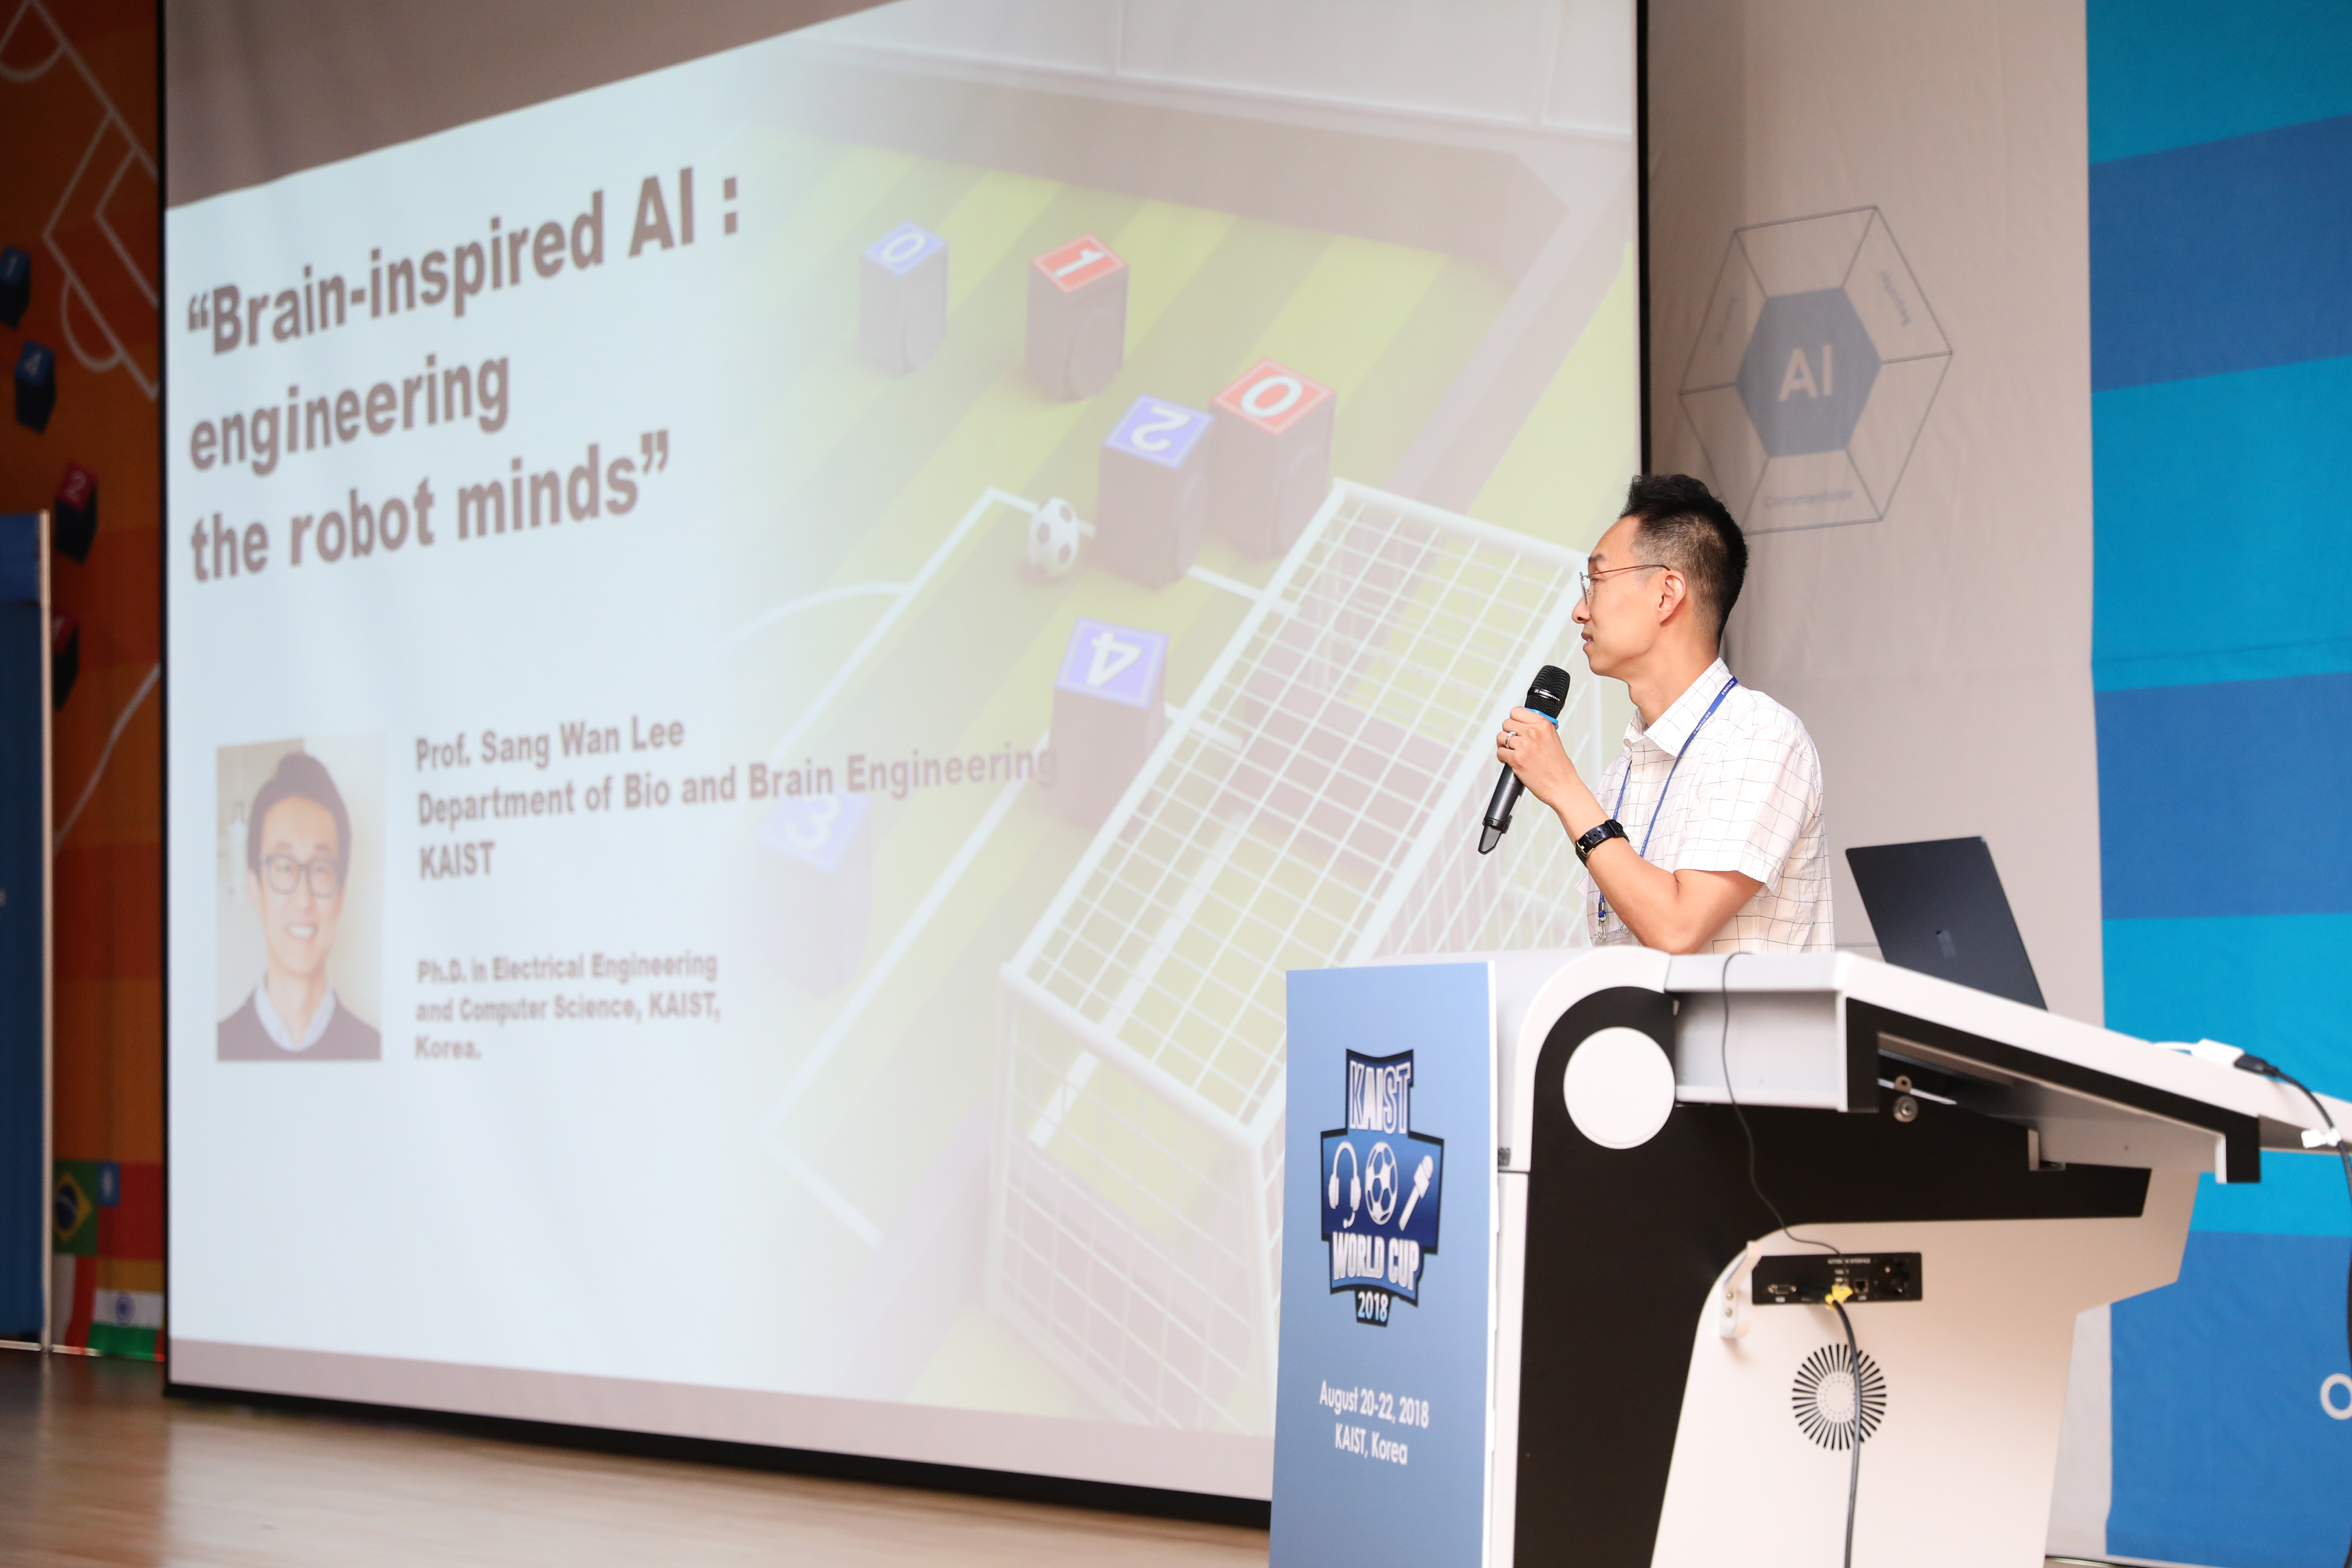 Lecture on AI Flagship : Brain-inspired AI: engineering the robot minds (by Prof. Sangwan Lee; Department of Bio and Brain Engineering, KAIST)